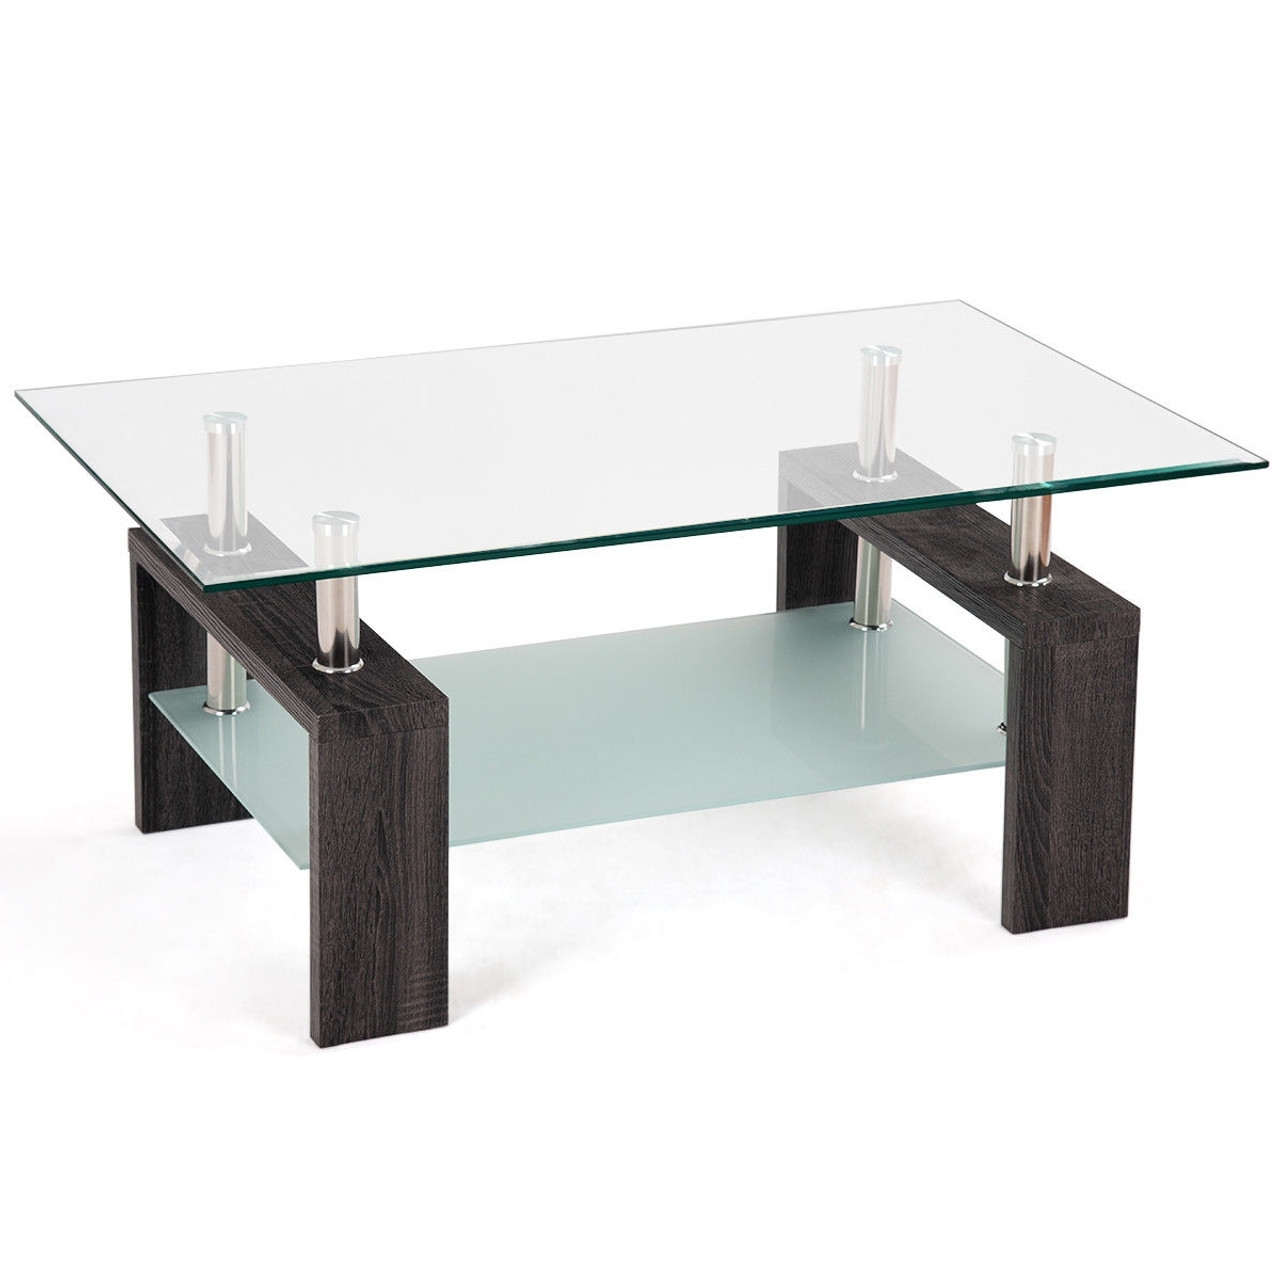 Picture of: Rectangular Tempered Glass Coffee Table With Shelf Black Hw57279bk